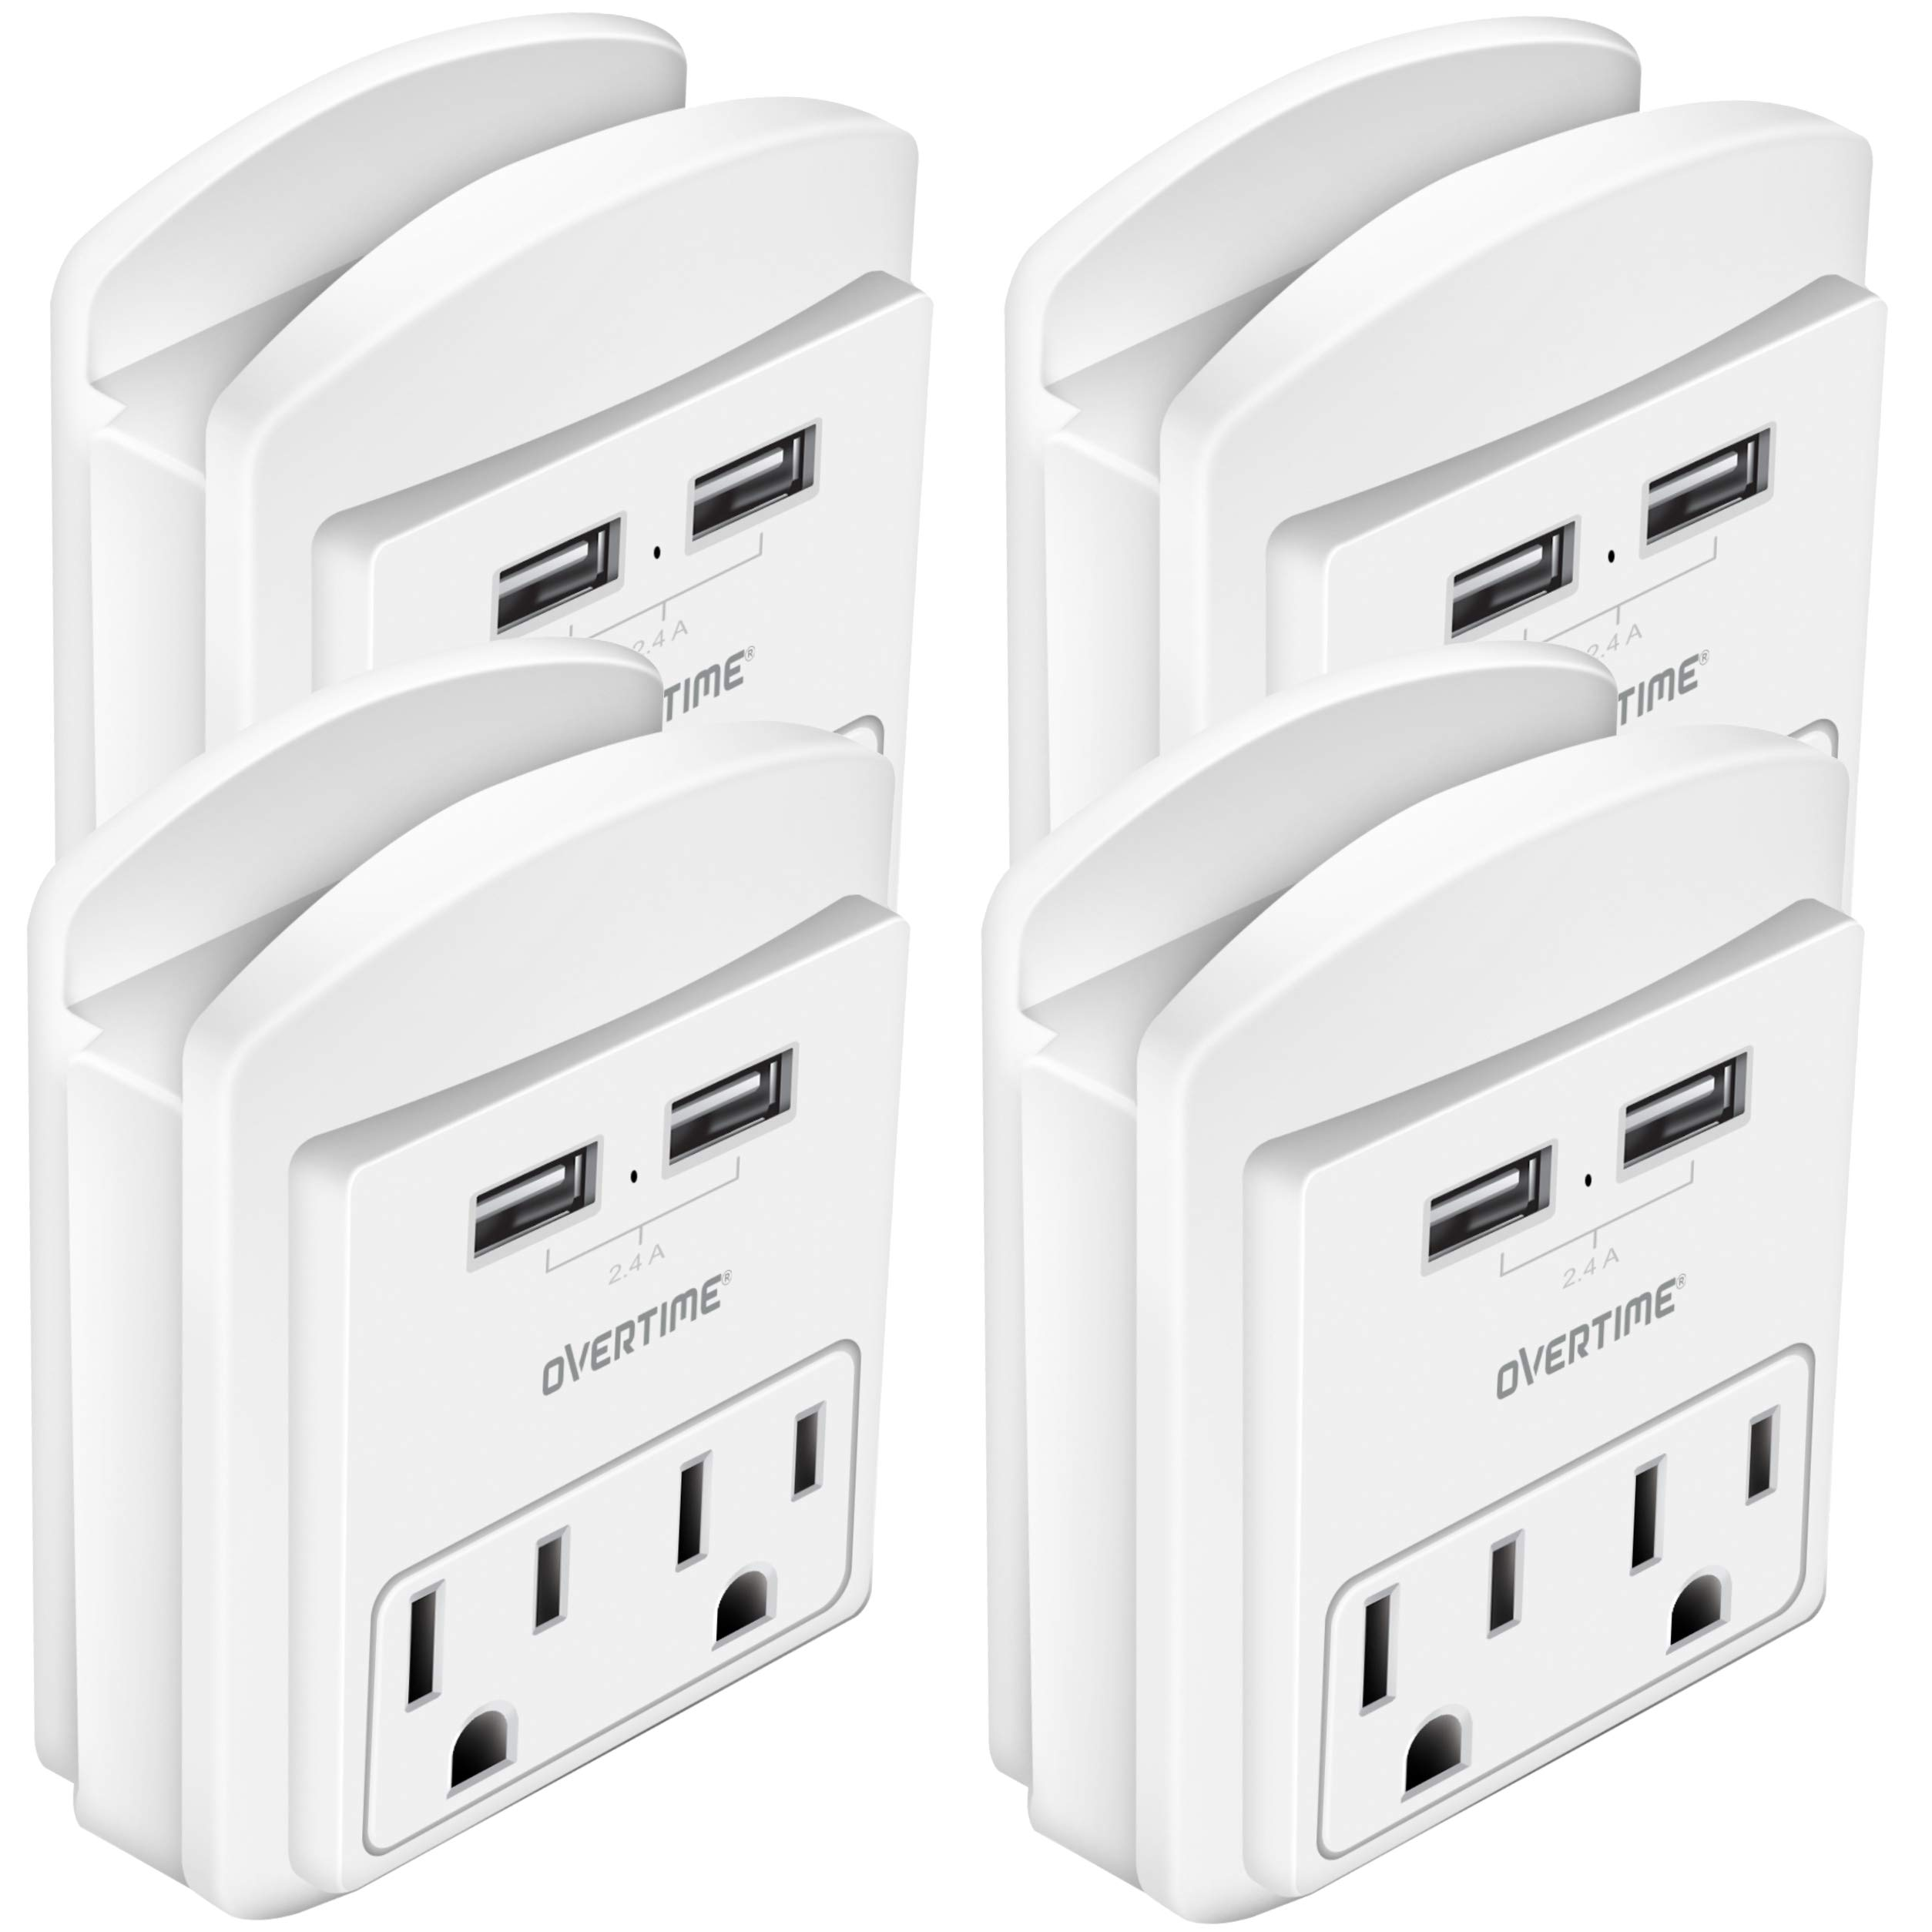 Socket Shelf (4 Pack) - USB Wall Charger with 2 USB charging ports 2.4 Amp, Surge Protector 2-outlet Wall Mount with Cell Phone Holder, Multiple Outlet Socket for Home, School, Office, ETL Certified